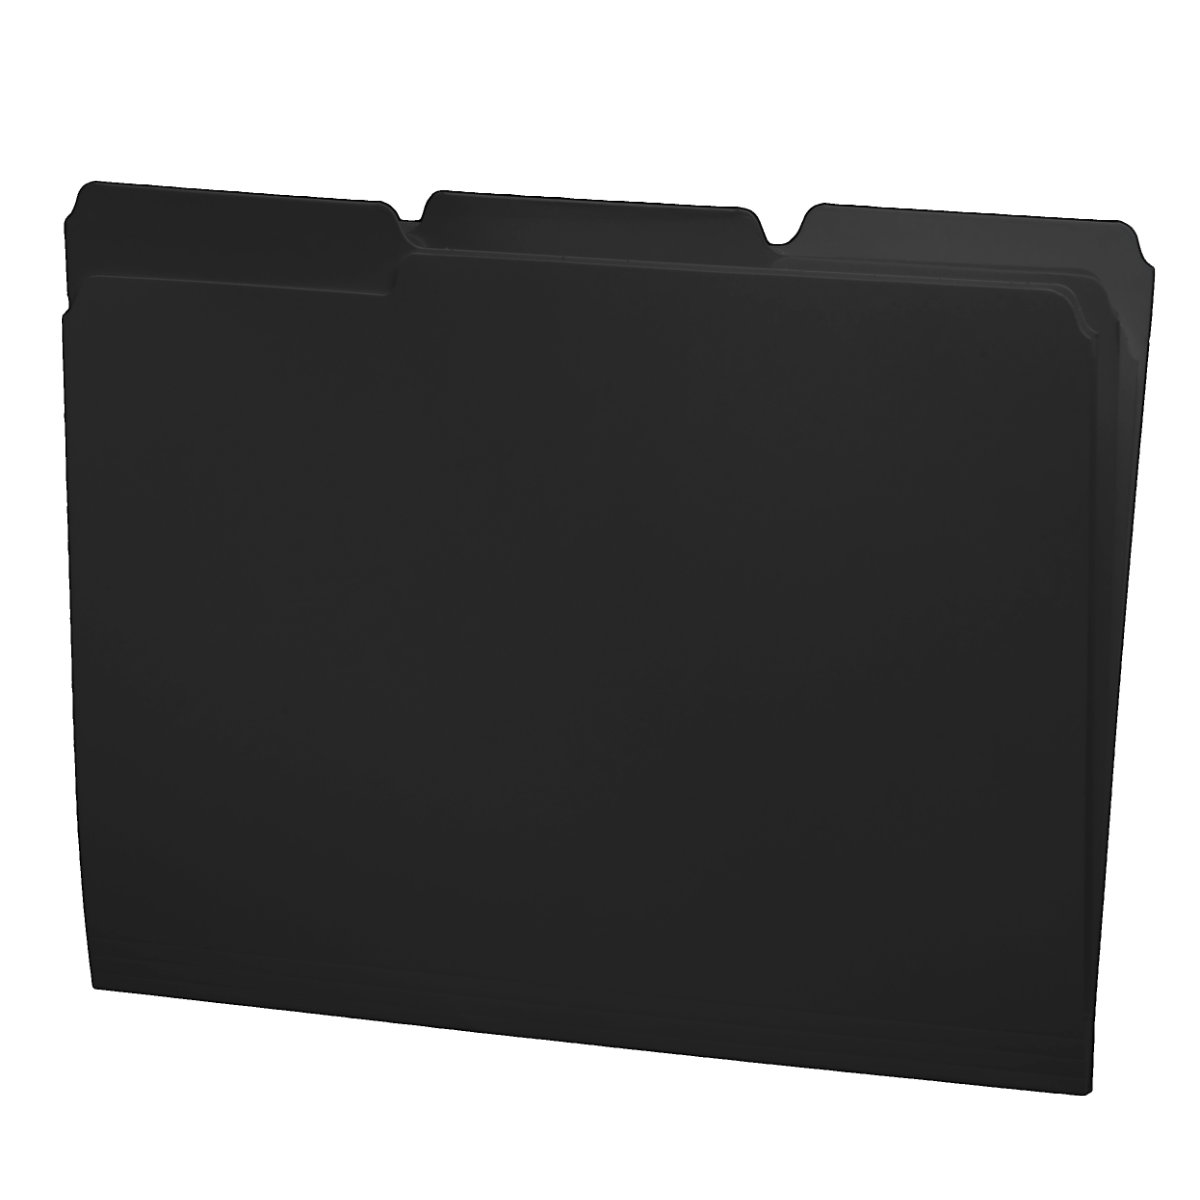 S-30503-BLK - 11 pt Black Folders, 1/3 Cut Top Tab - Assorted, Letter Size (Box of 100)